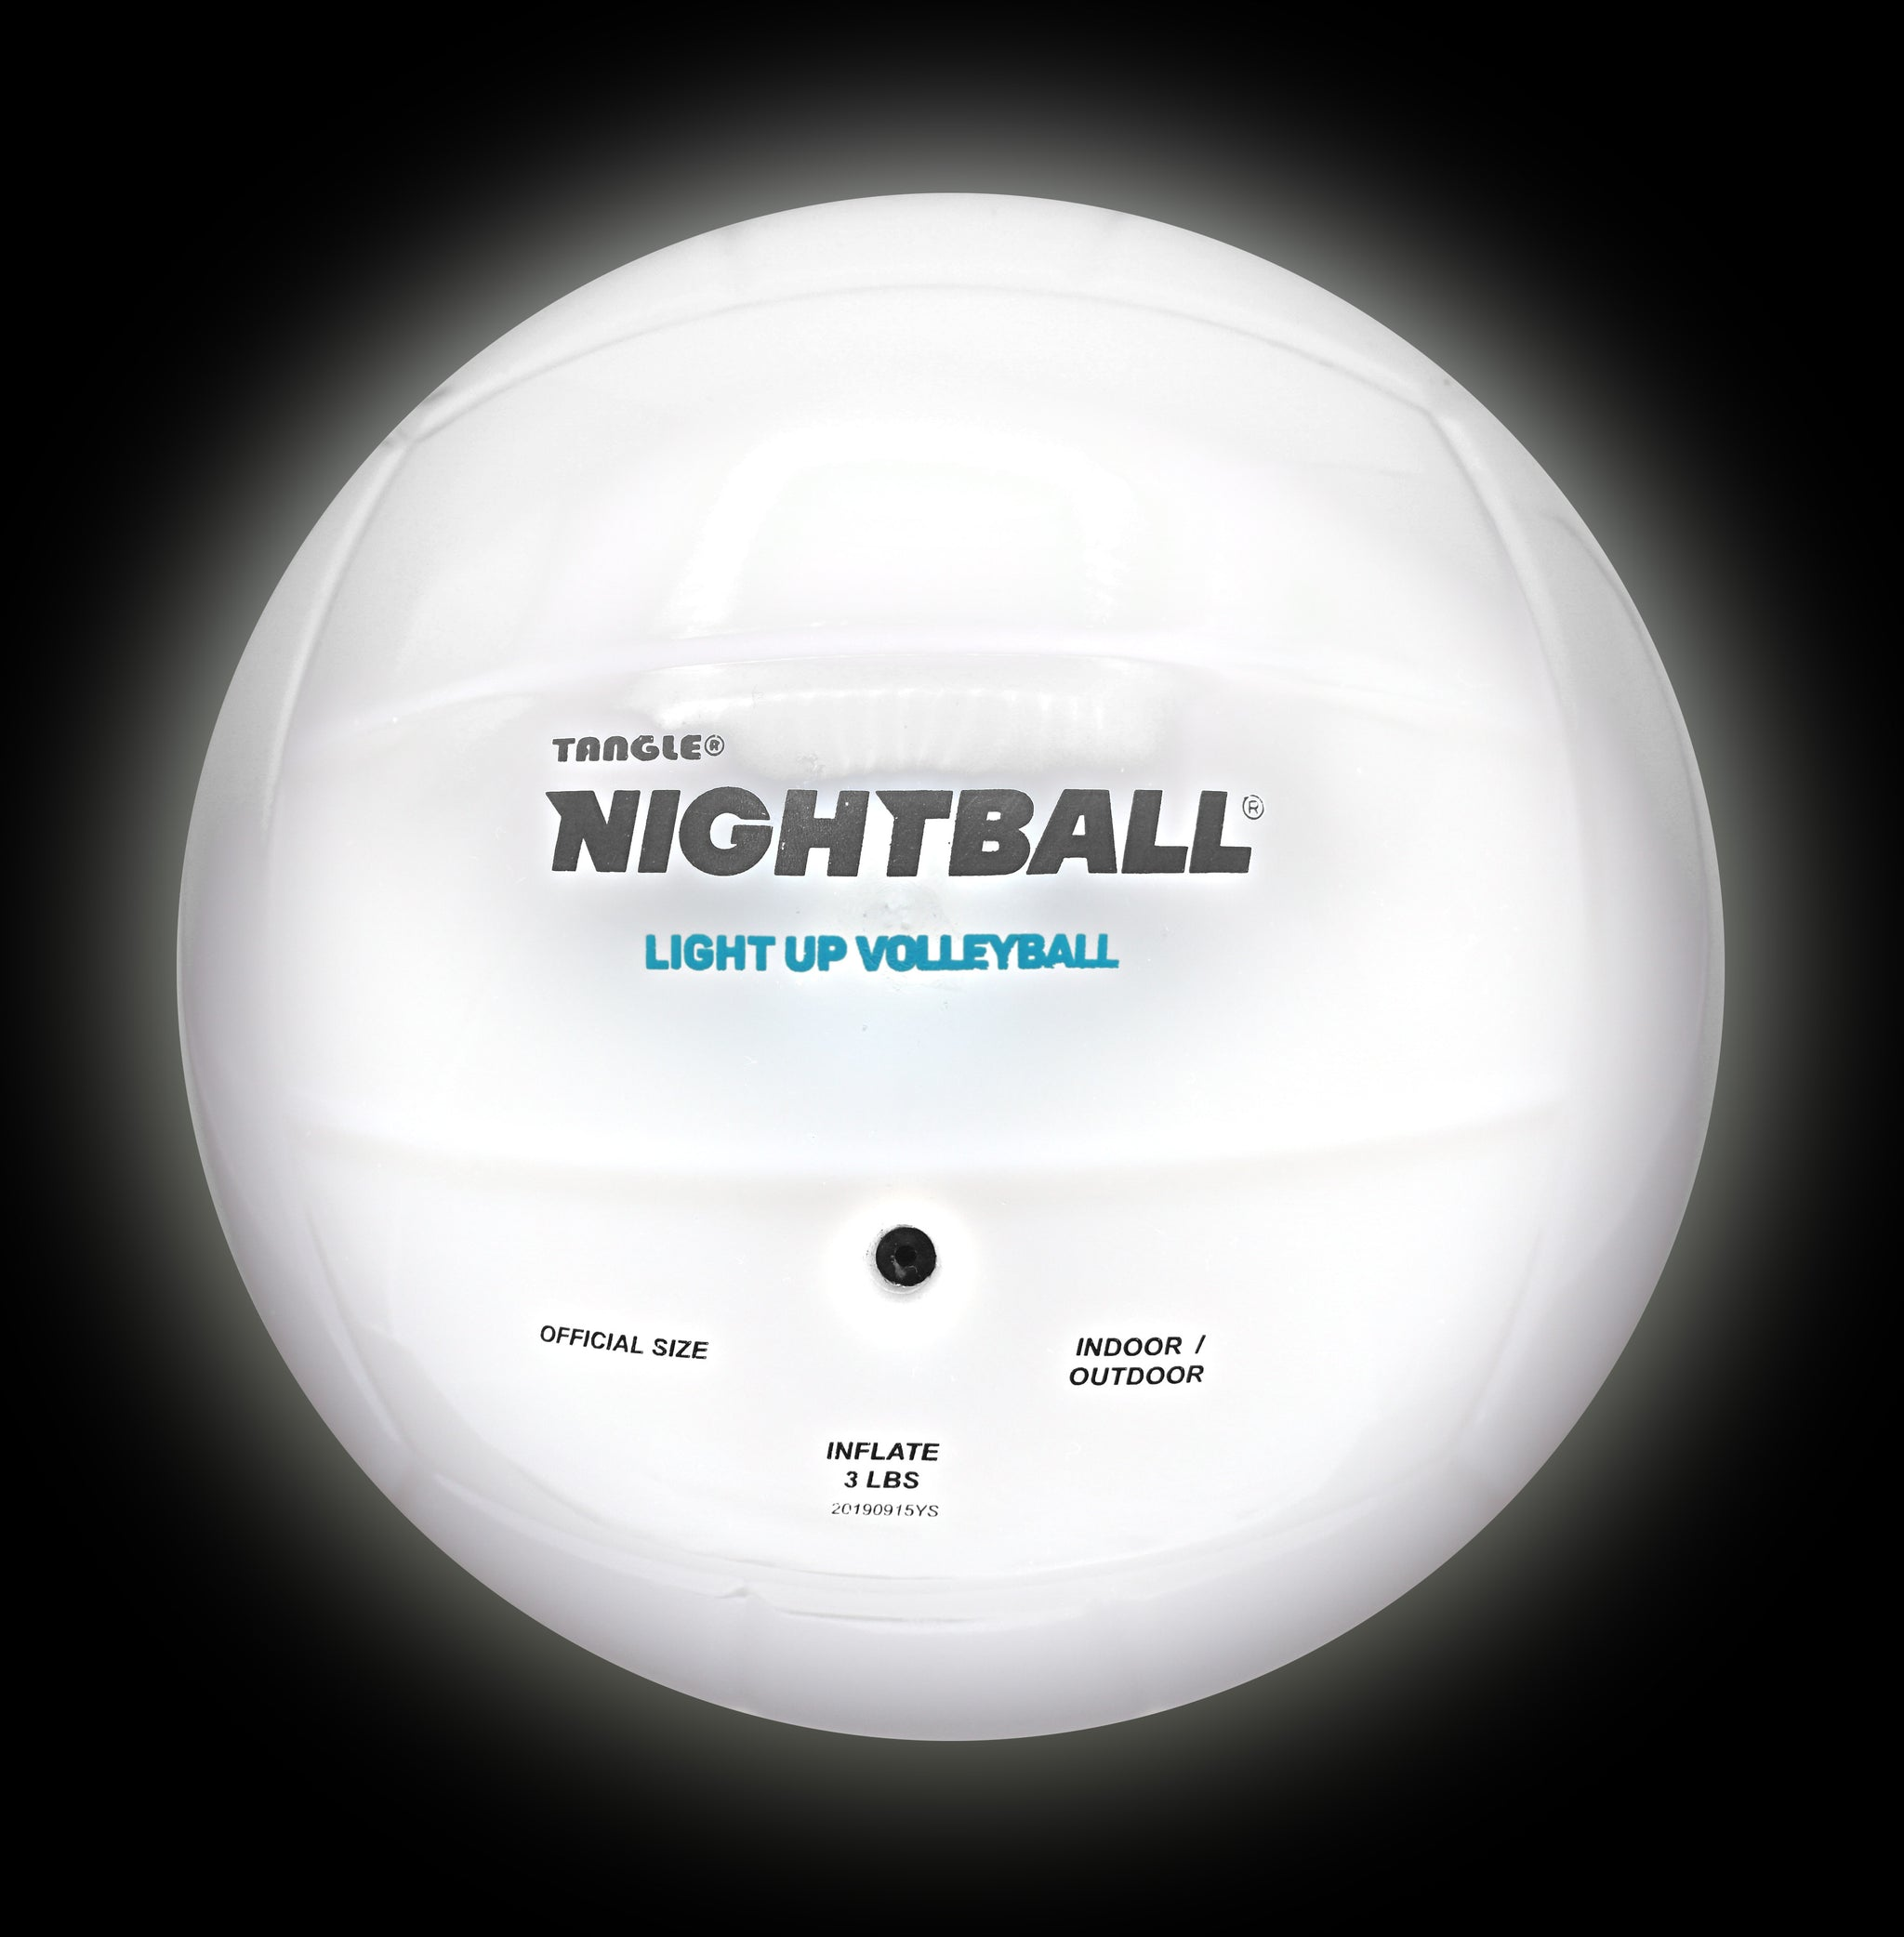 Tangle NightBall Volleyball